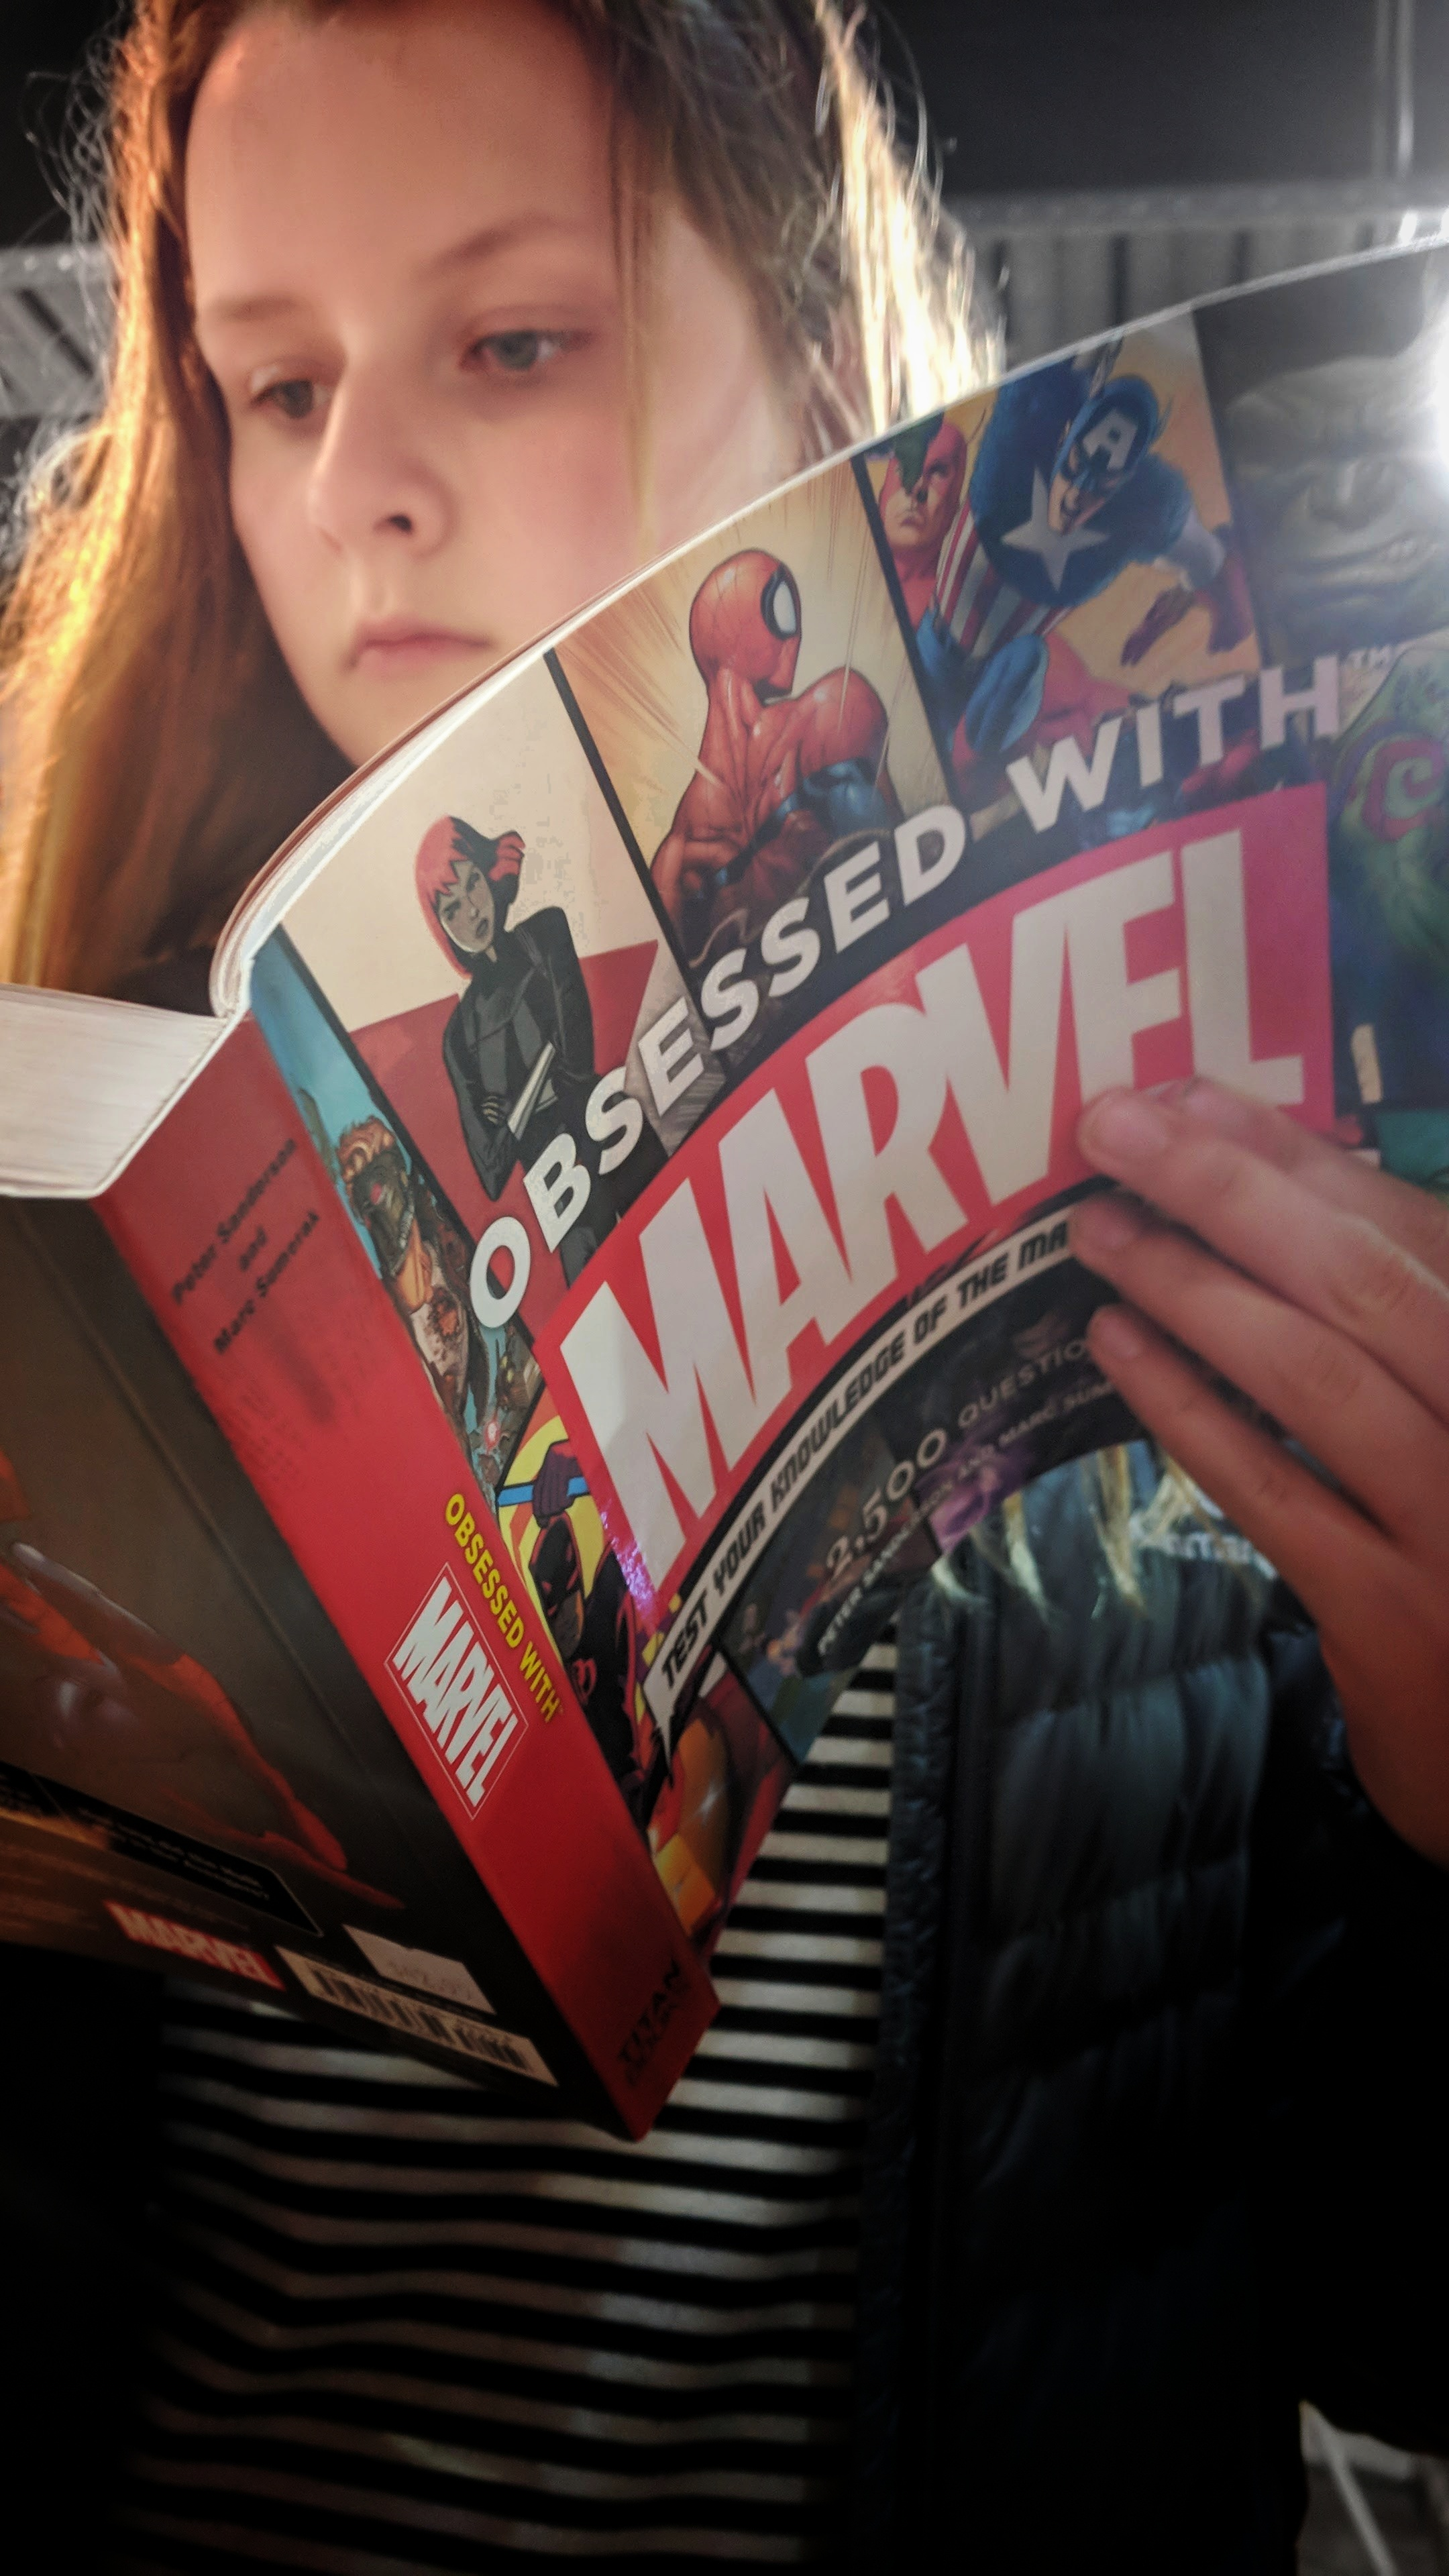 Girl reads 'Obsessed With Marvel' book